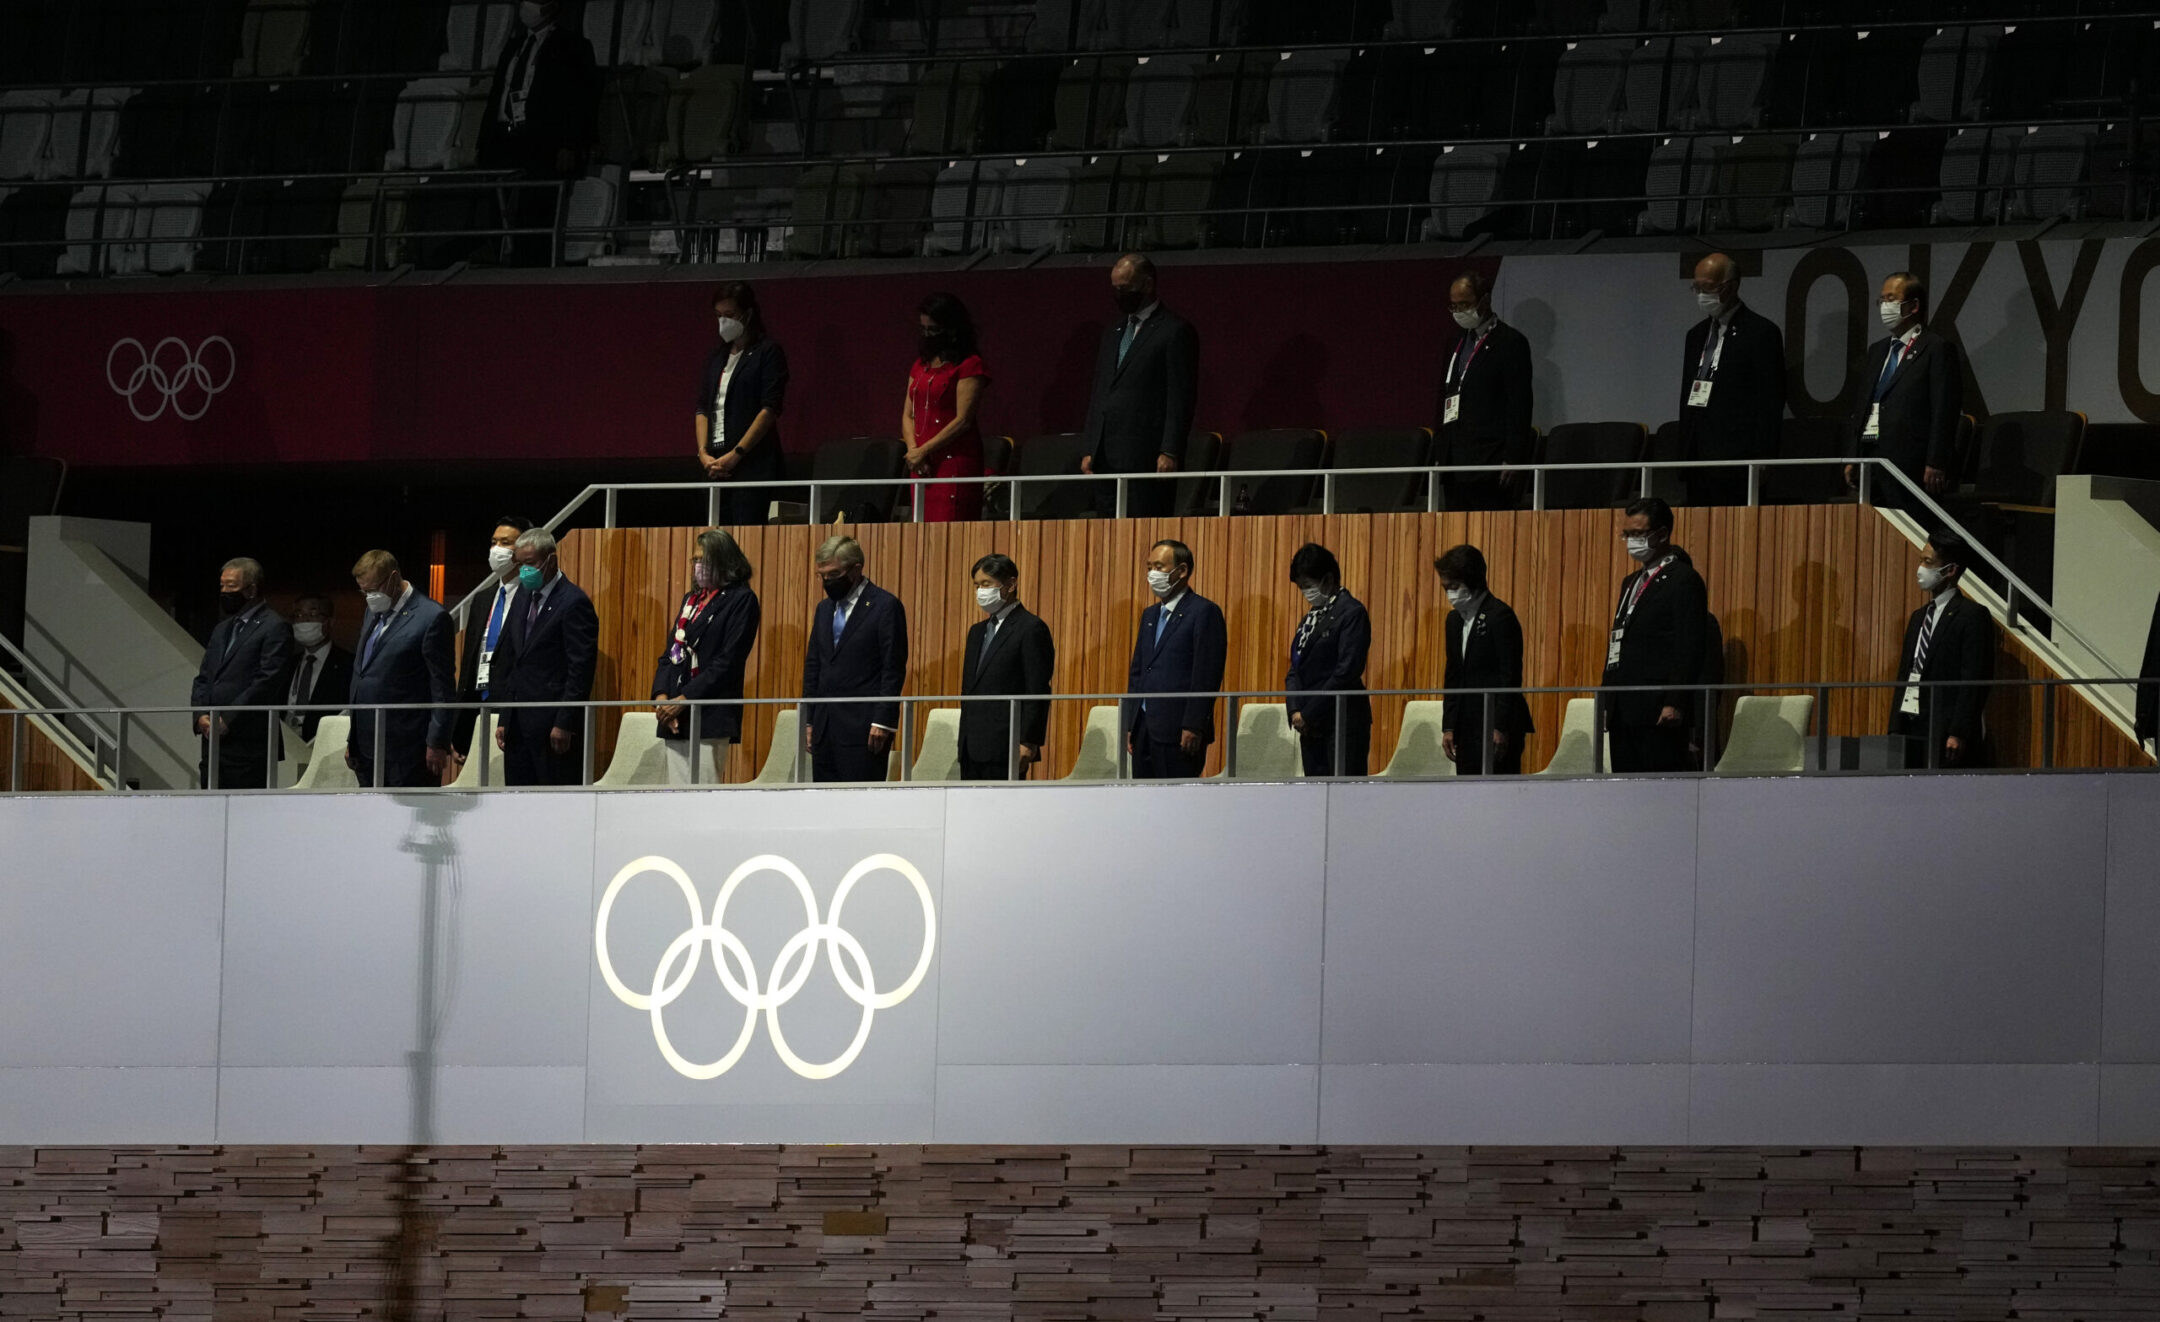 For first time, Olympics opening ceremony honors Israeli athletes murdered in Munich